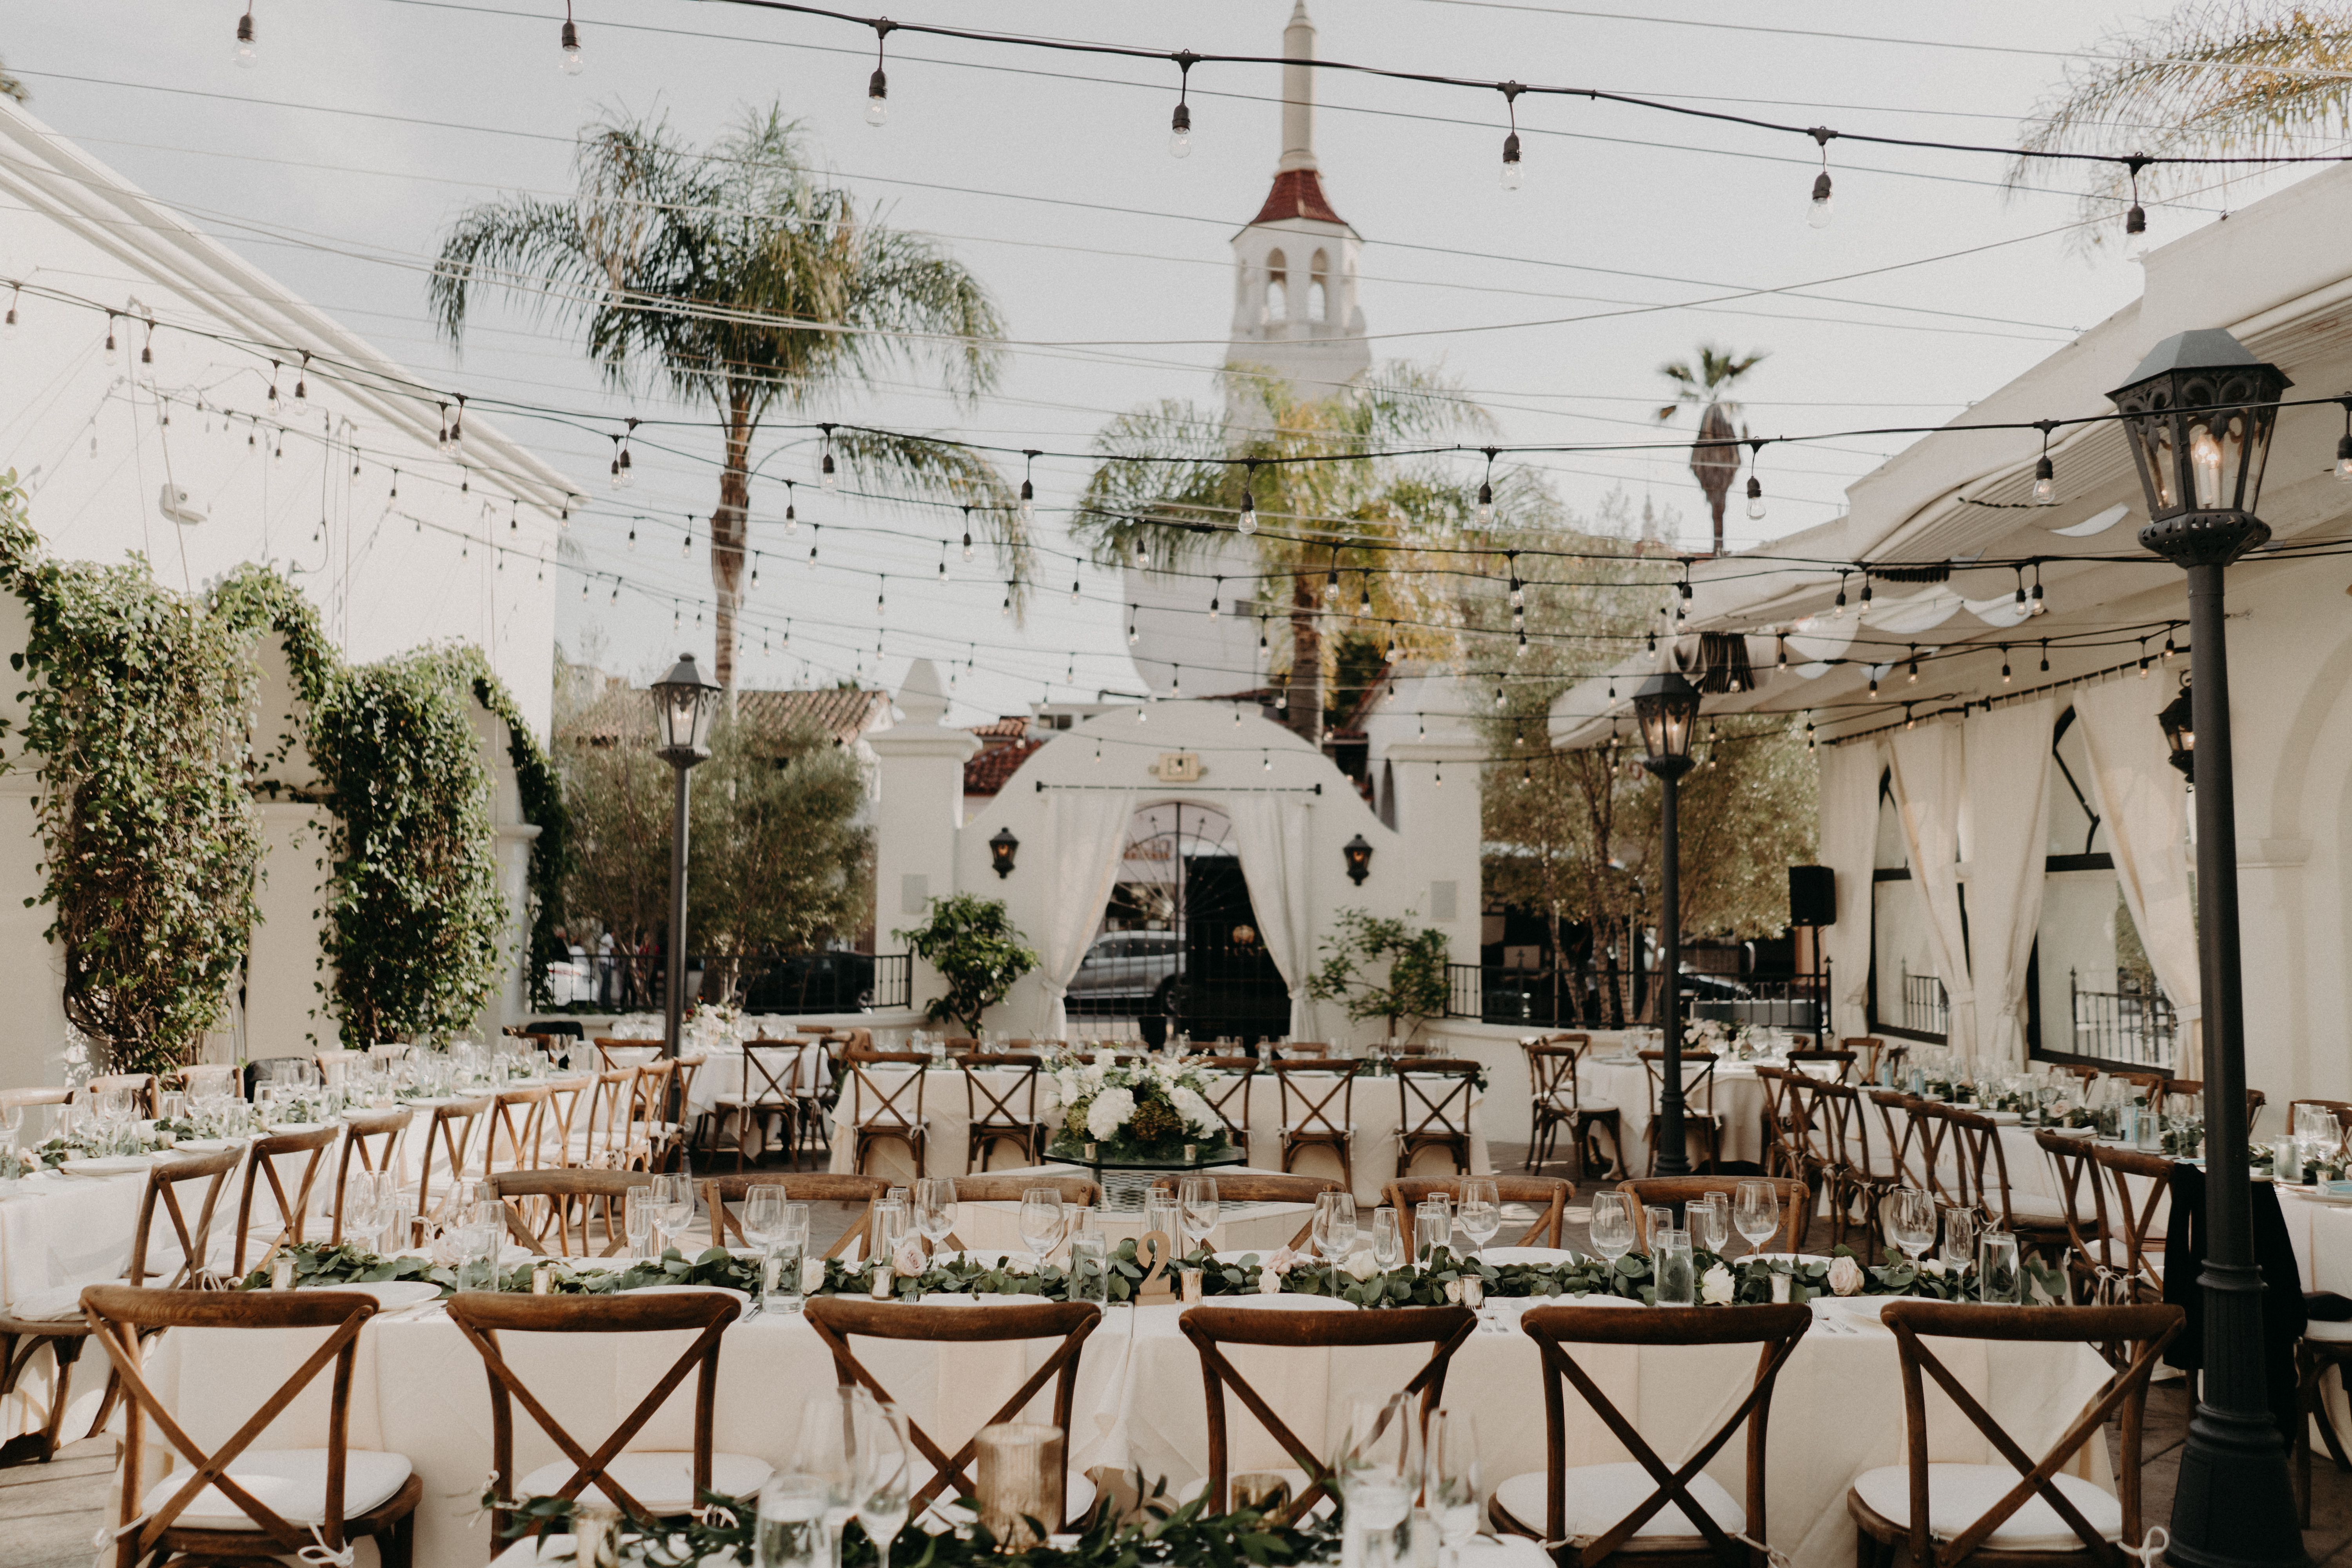 Aspen Jeannè Photography - Seattle & Los Angeles Weddings